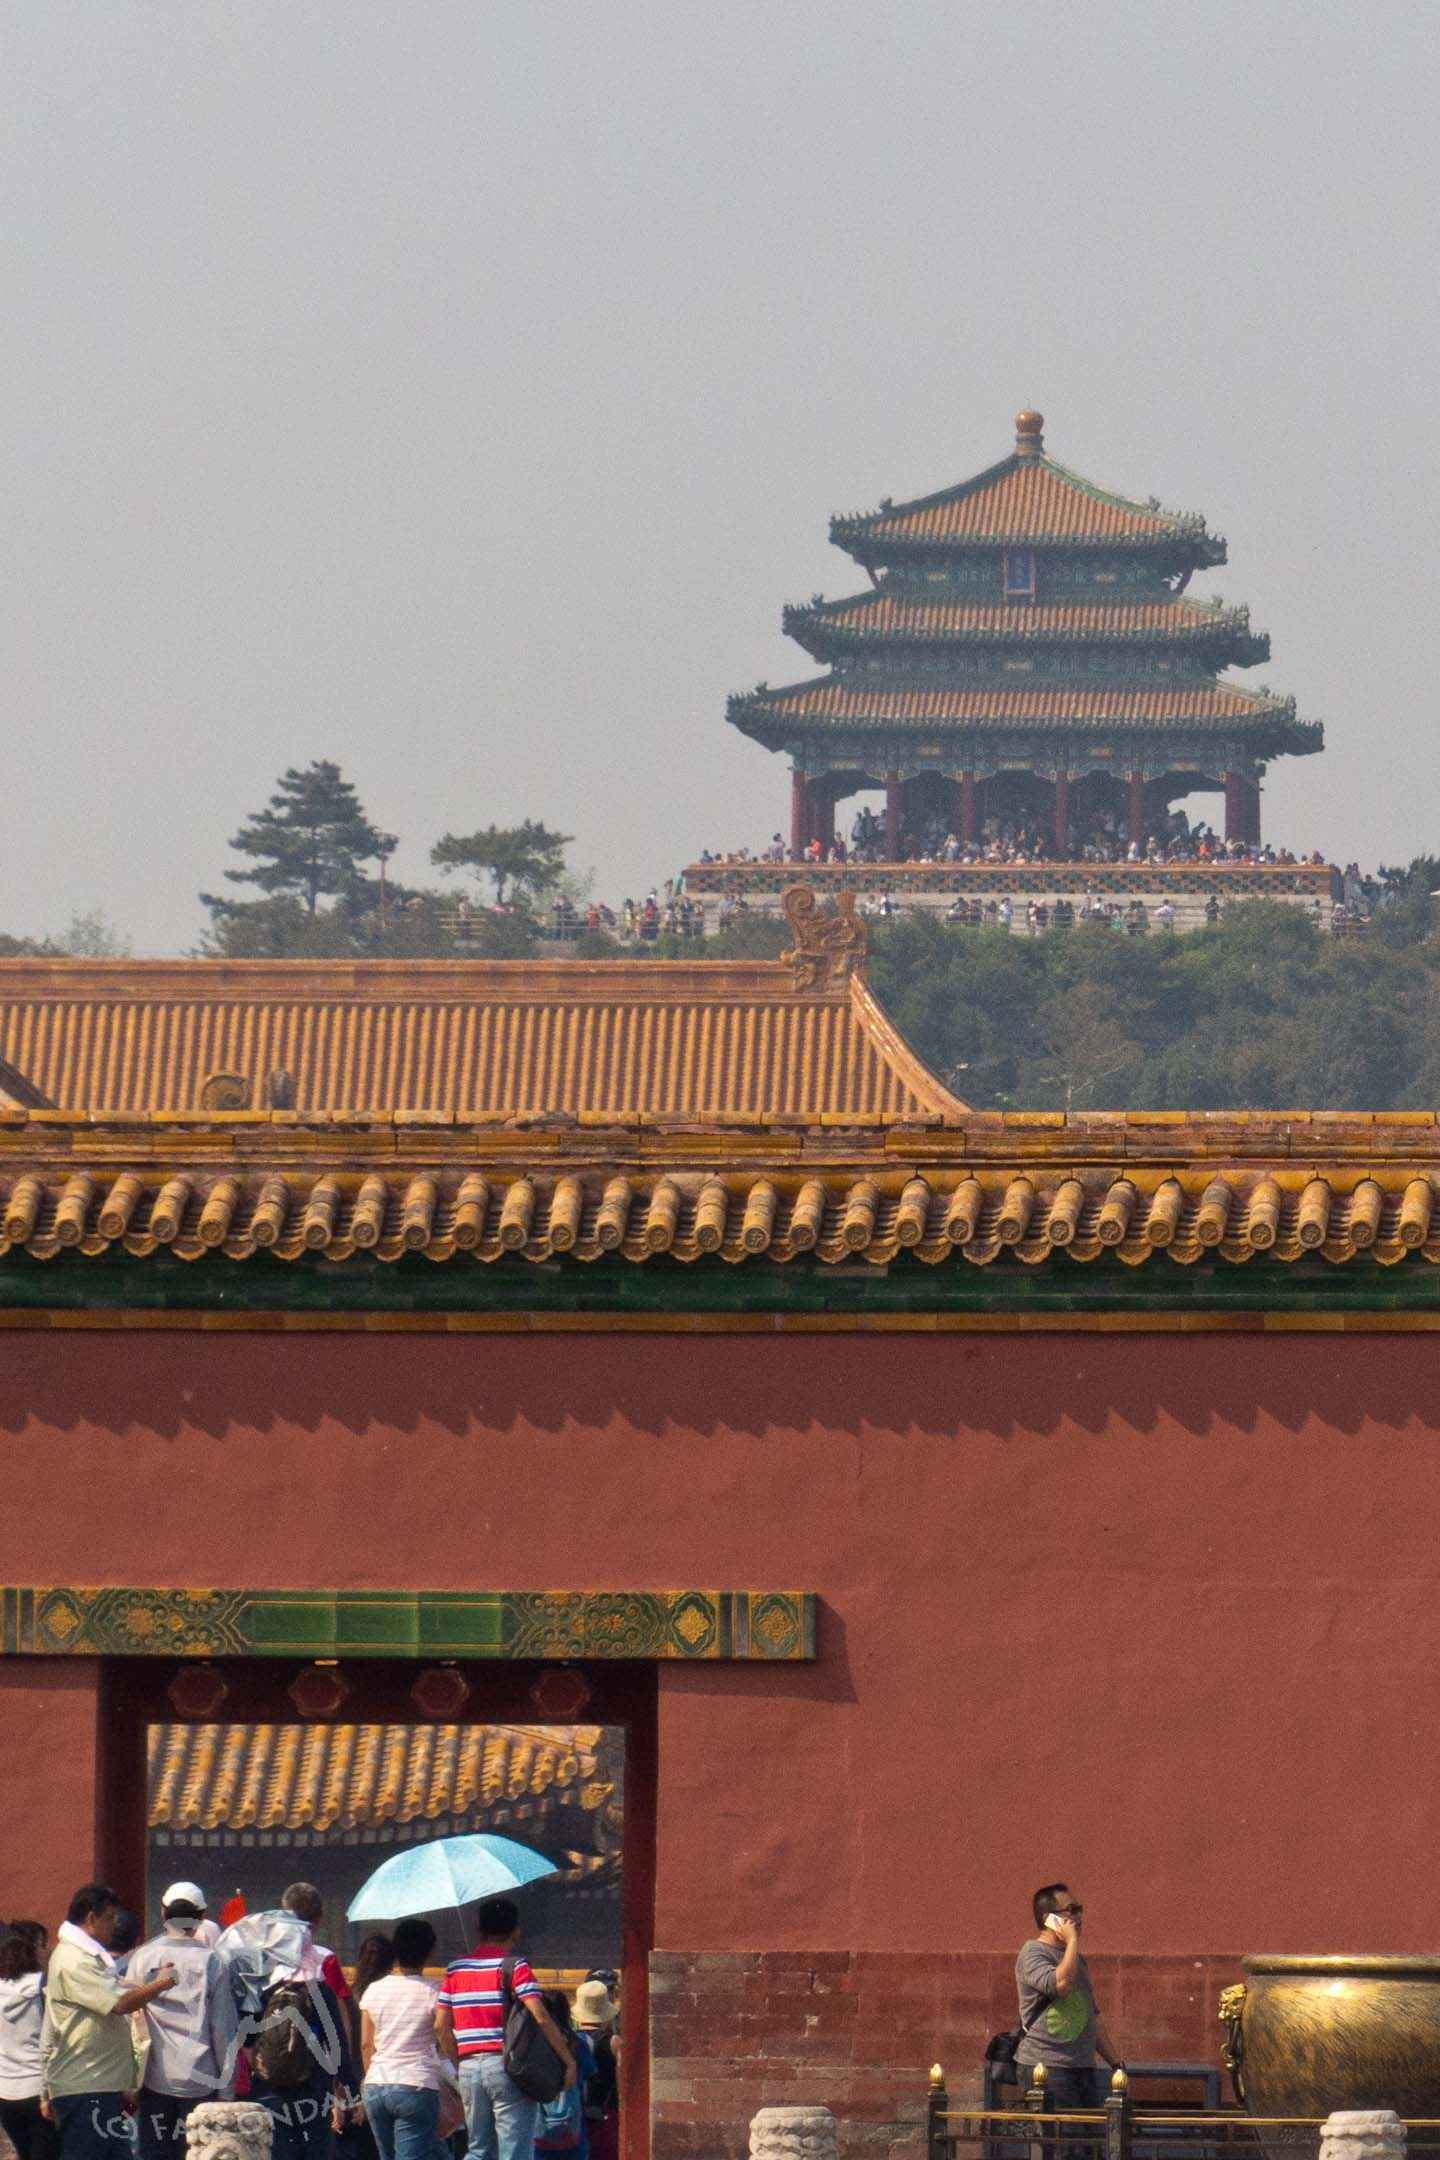 How to spend a day off from business travel in China, what can you fit in to one day in Beijing? Ideas to visit the sights, attractions and experiences with tips to take better photographs. Visit the Forbidden City. You may leave the city with a wish to come back for a proper holiday. Image description: Jingshan Park seen from The Forbidden City